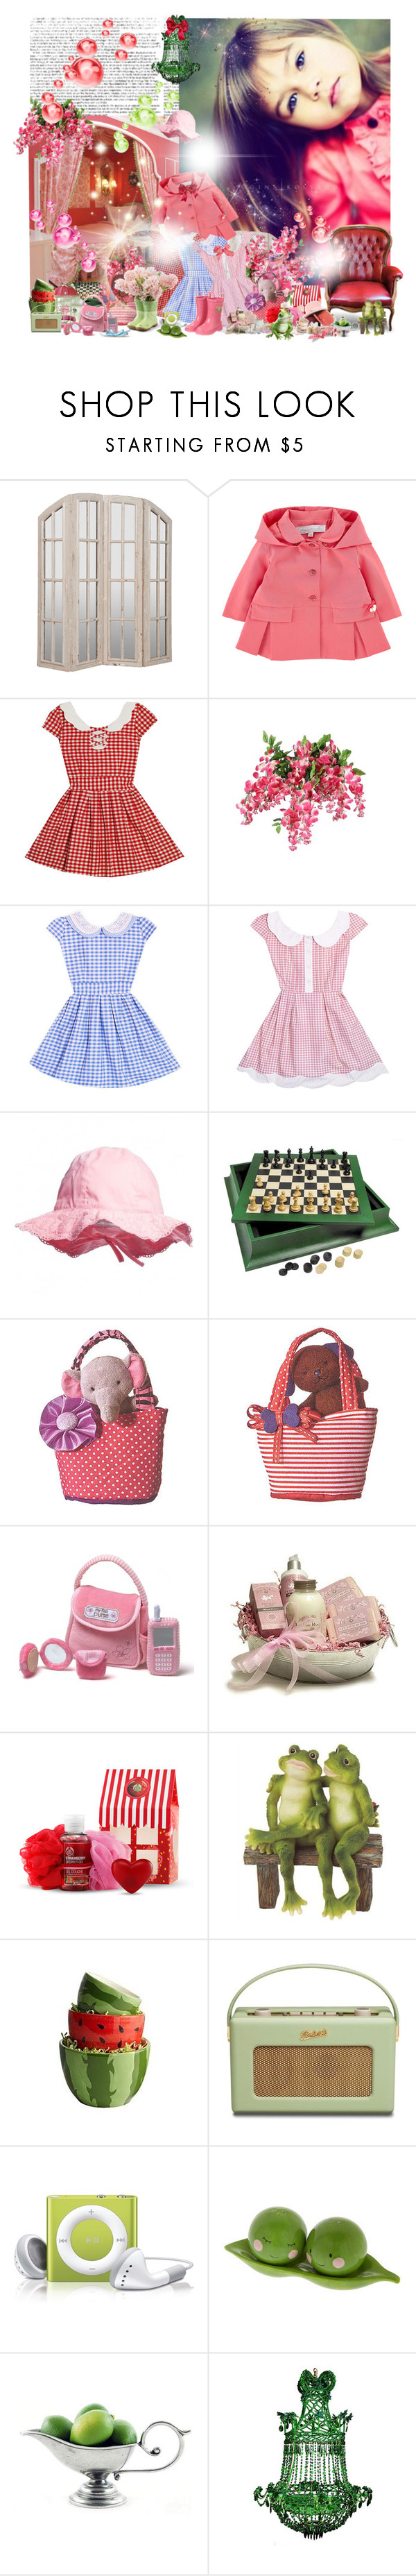 """Untitled #1045"" by patsypatsy ❤ liked on Polyvore featuring beauty, Tartine et Chocolat, Buccellati, Aurora World, Une, Gund, The Body Shop, Pier 1 Imports, Looking Glass and One Hundred 80 Degrees"